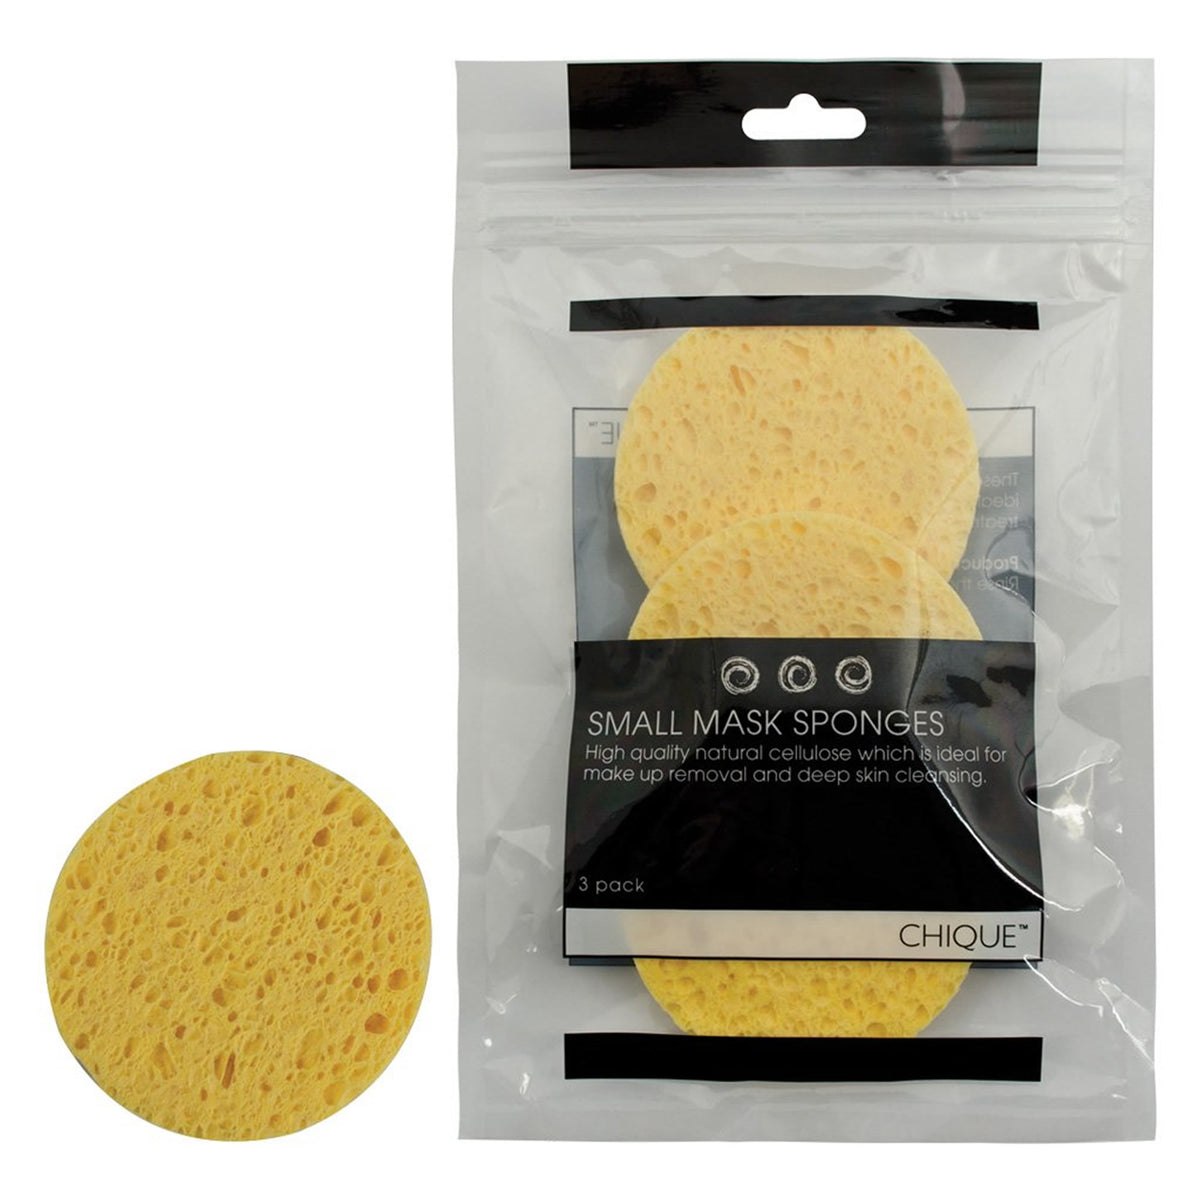 Royal & Langnickel Chique Small Mask Sponges (3pc) - Red Carpet FX - Professional Makeup